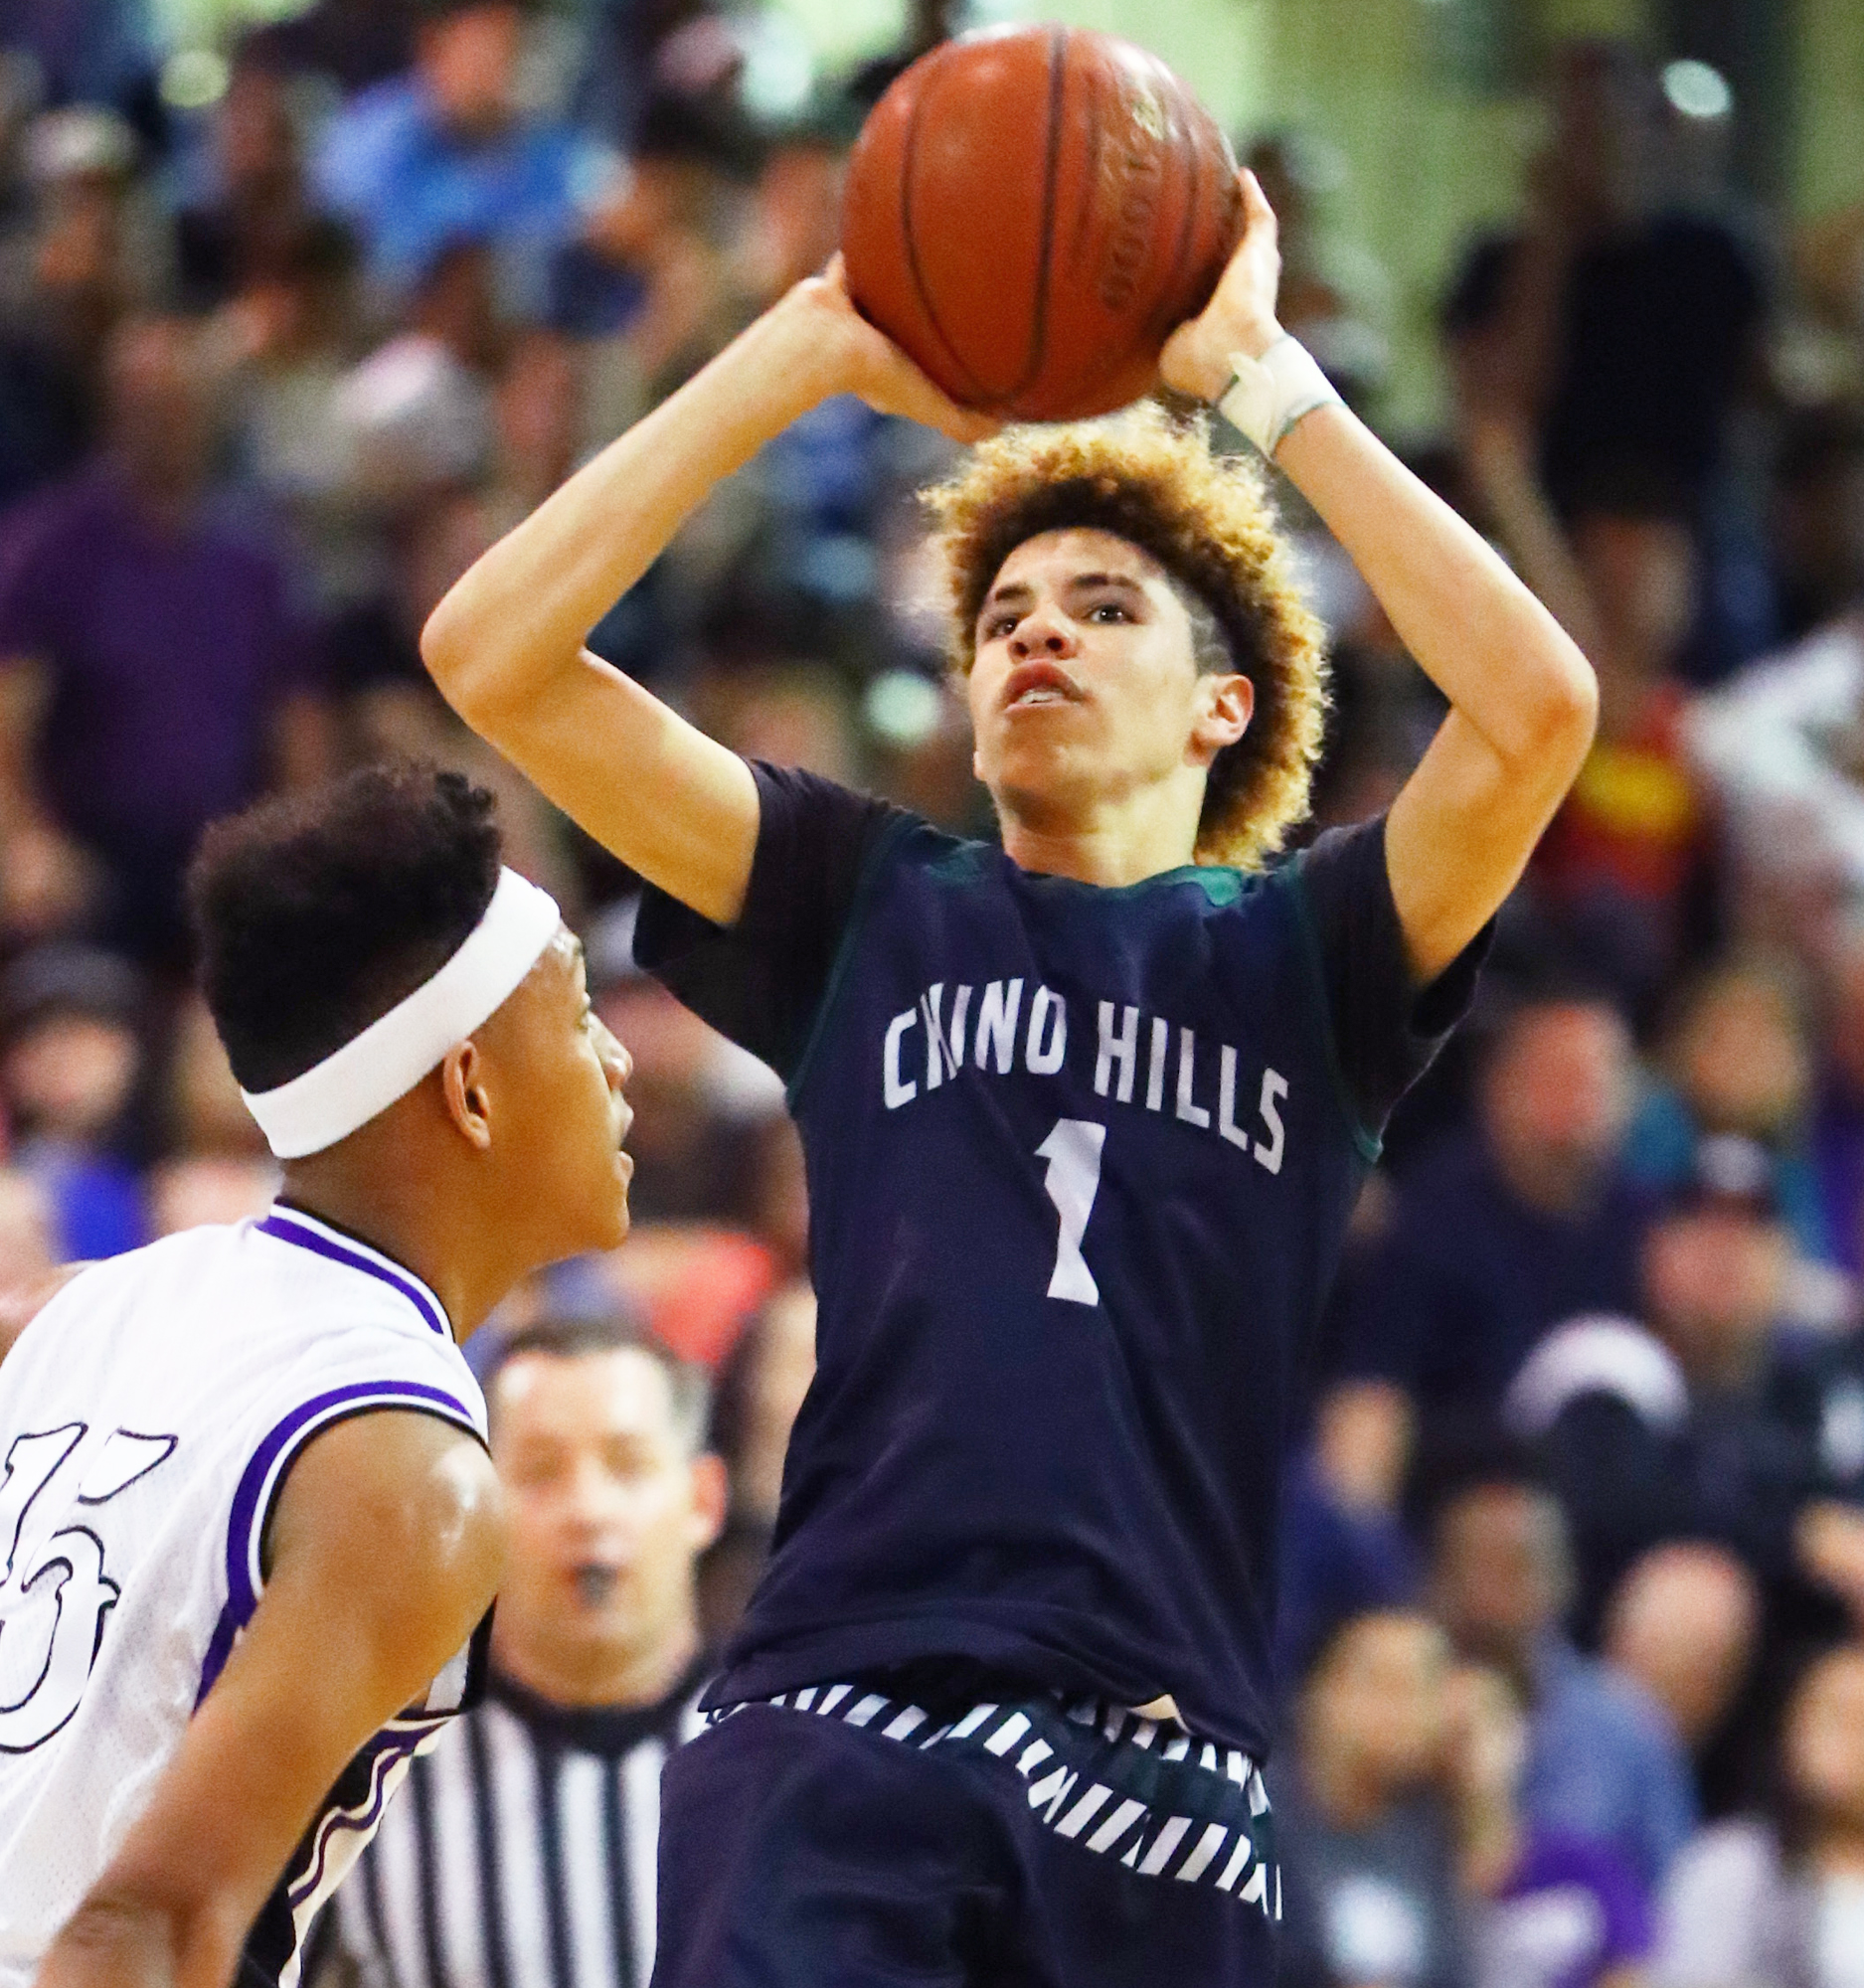 The extraordinary life of LaMelo Ball dc1491247